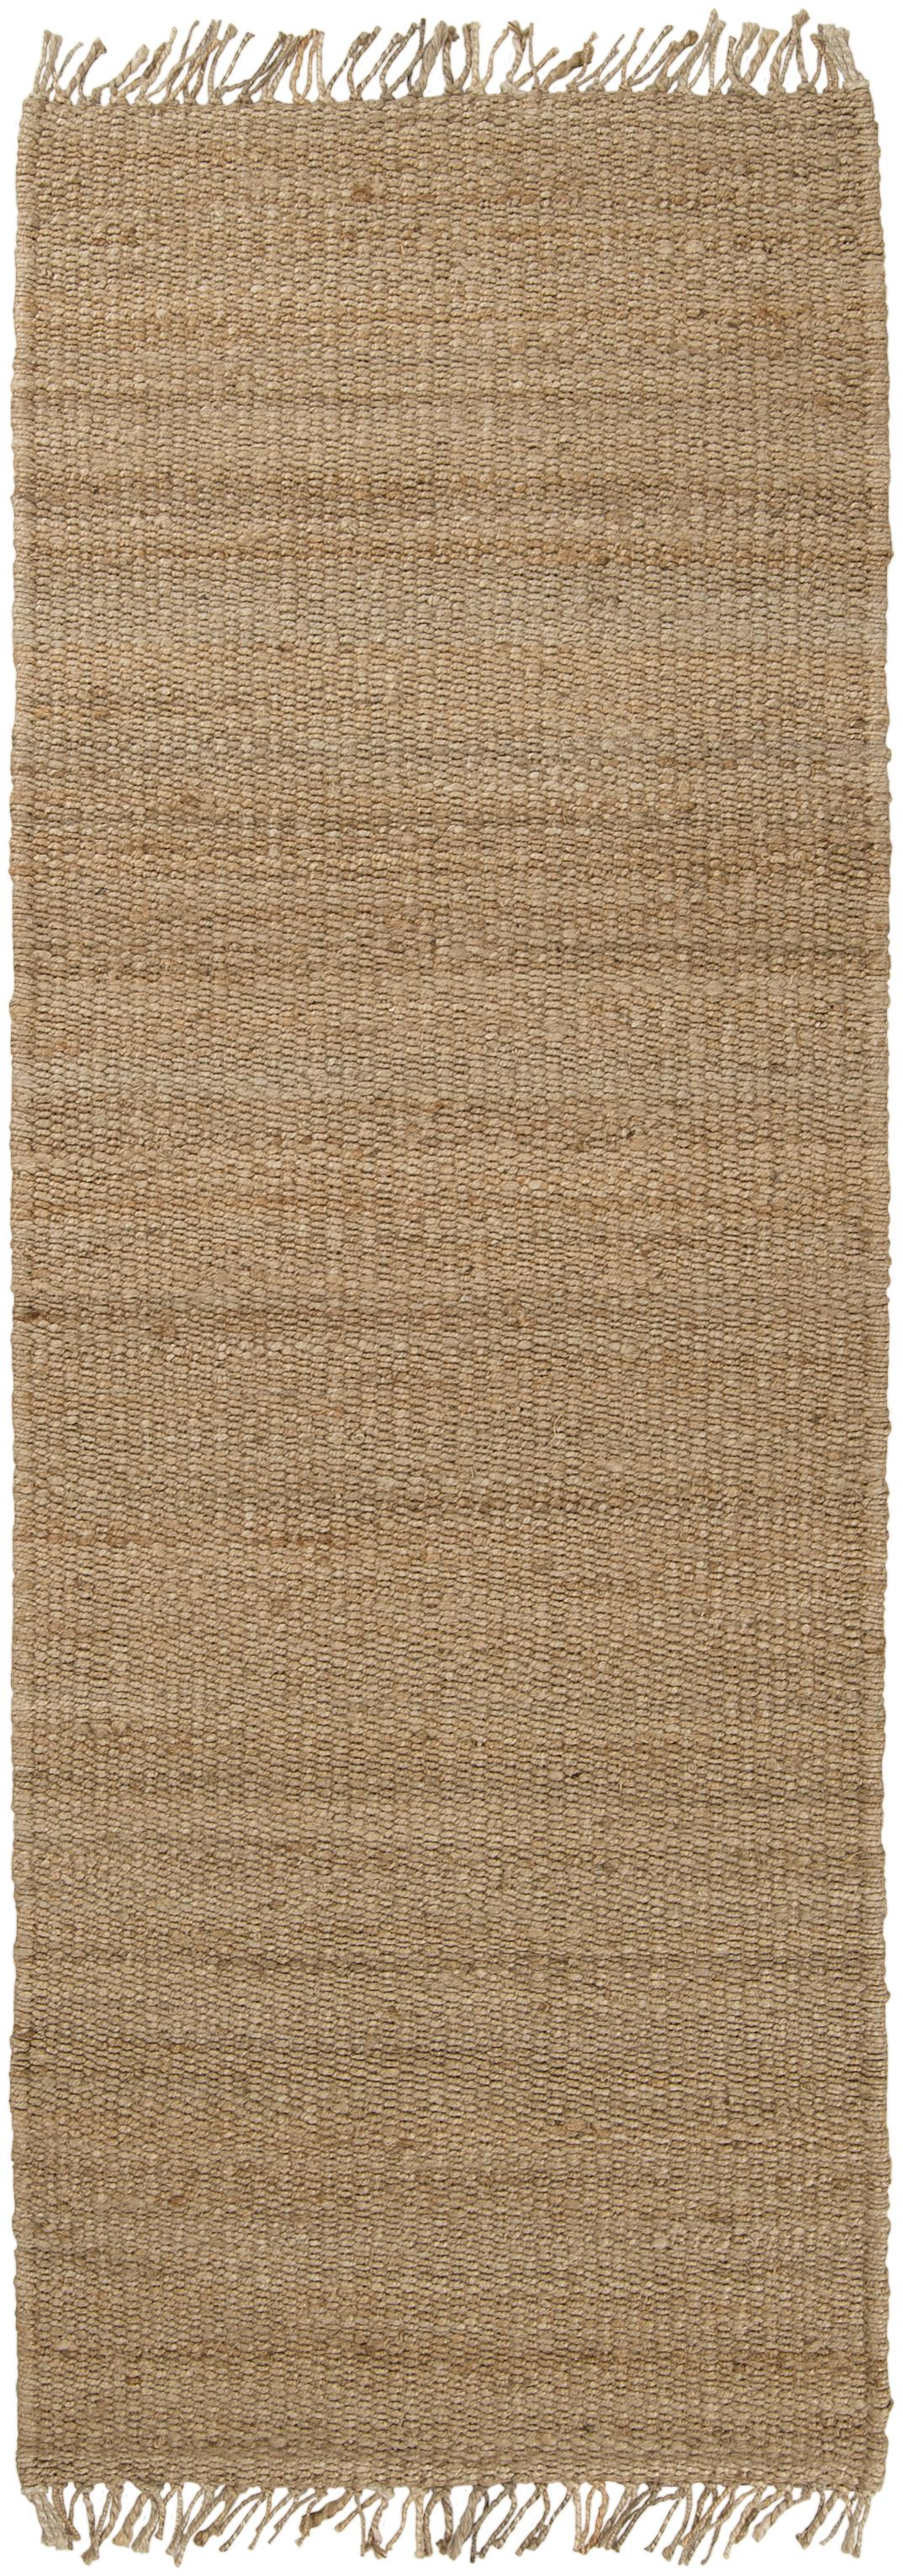 "Surya Jute Natural 2'6"" x 8' - Item Number: J-268"